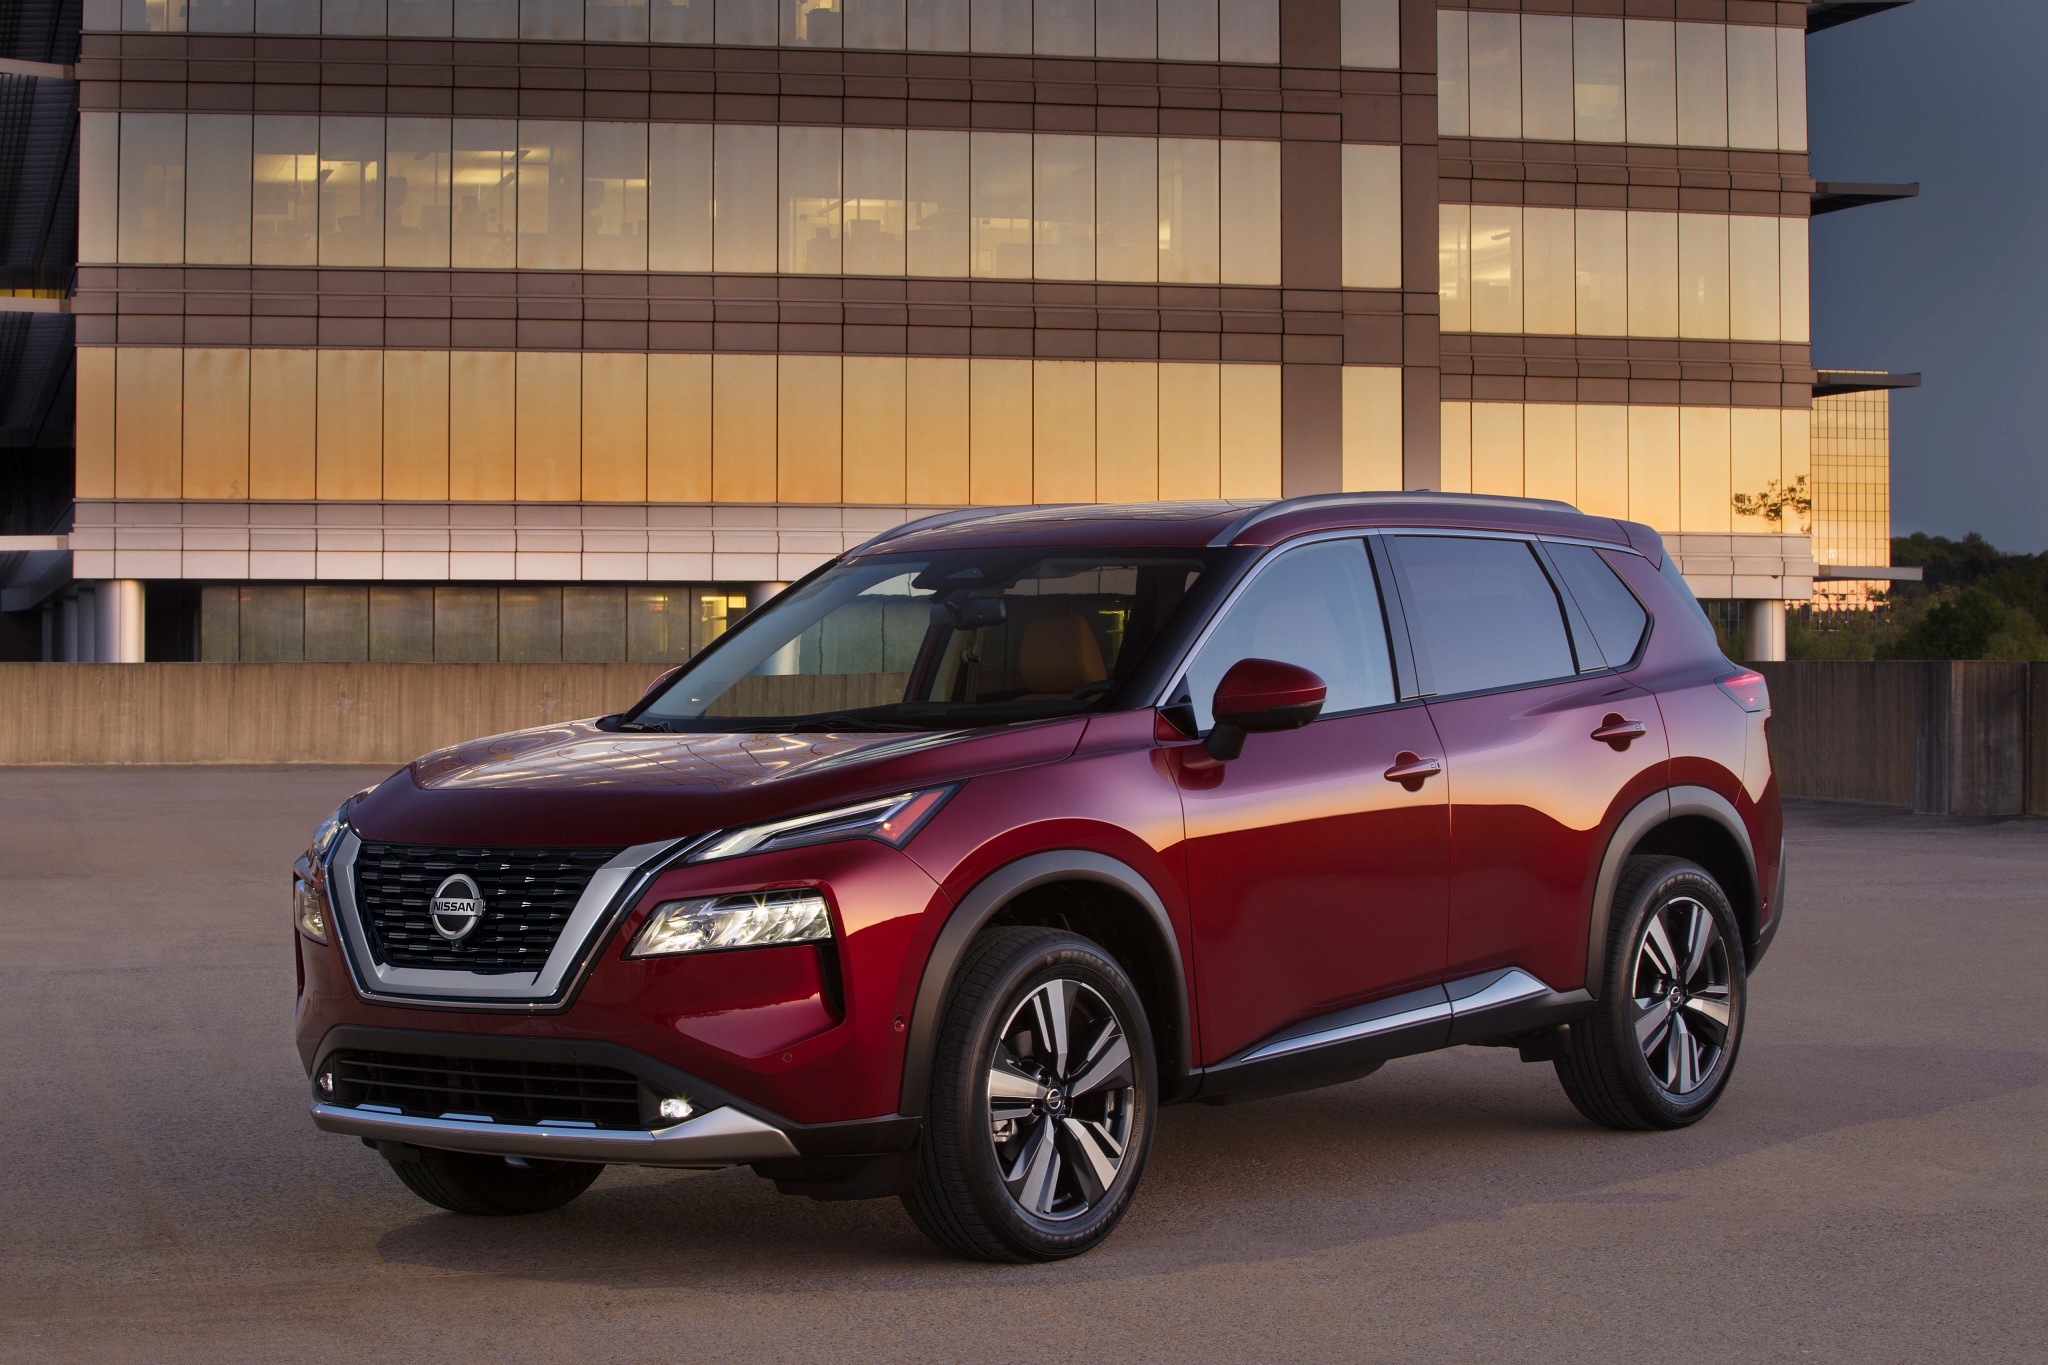 Redesigned Nissan Rogue Shows Up Tougher-Looking, Tech-Packed for 2021